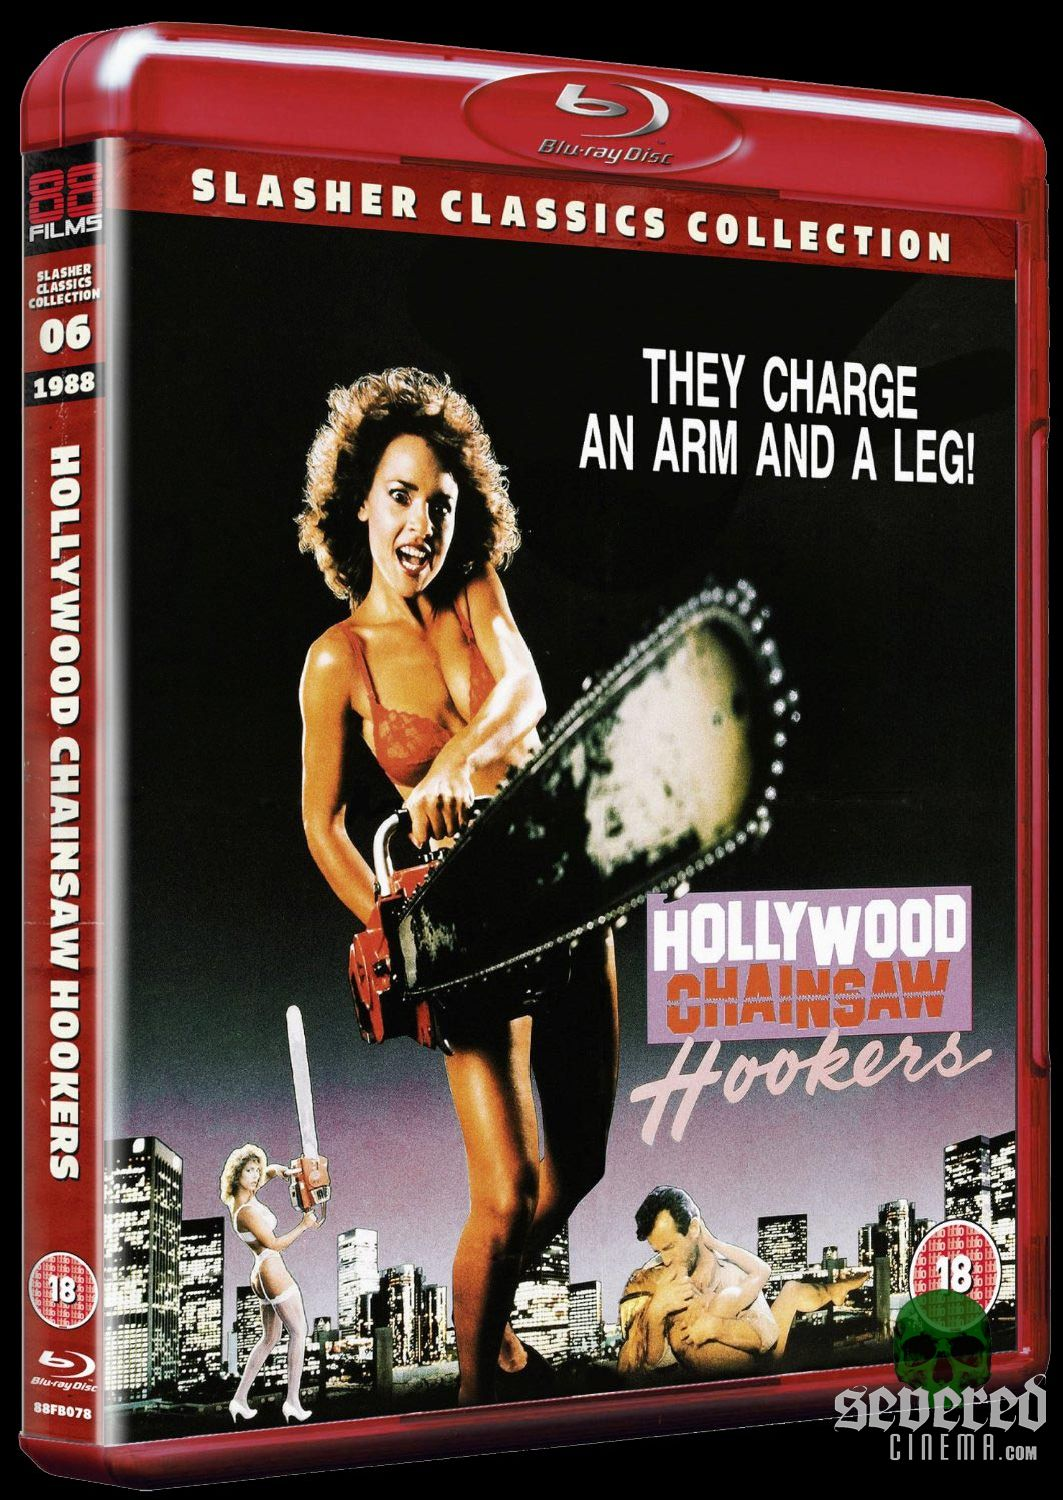 Hollywood Chainsaw Hookers on Blu-ray from 88 Films on Severed Cinema